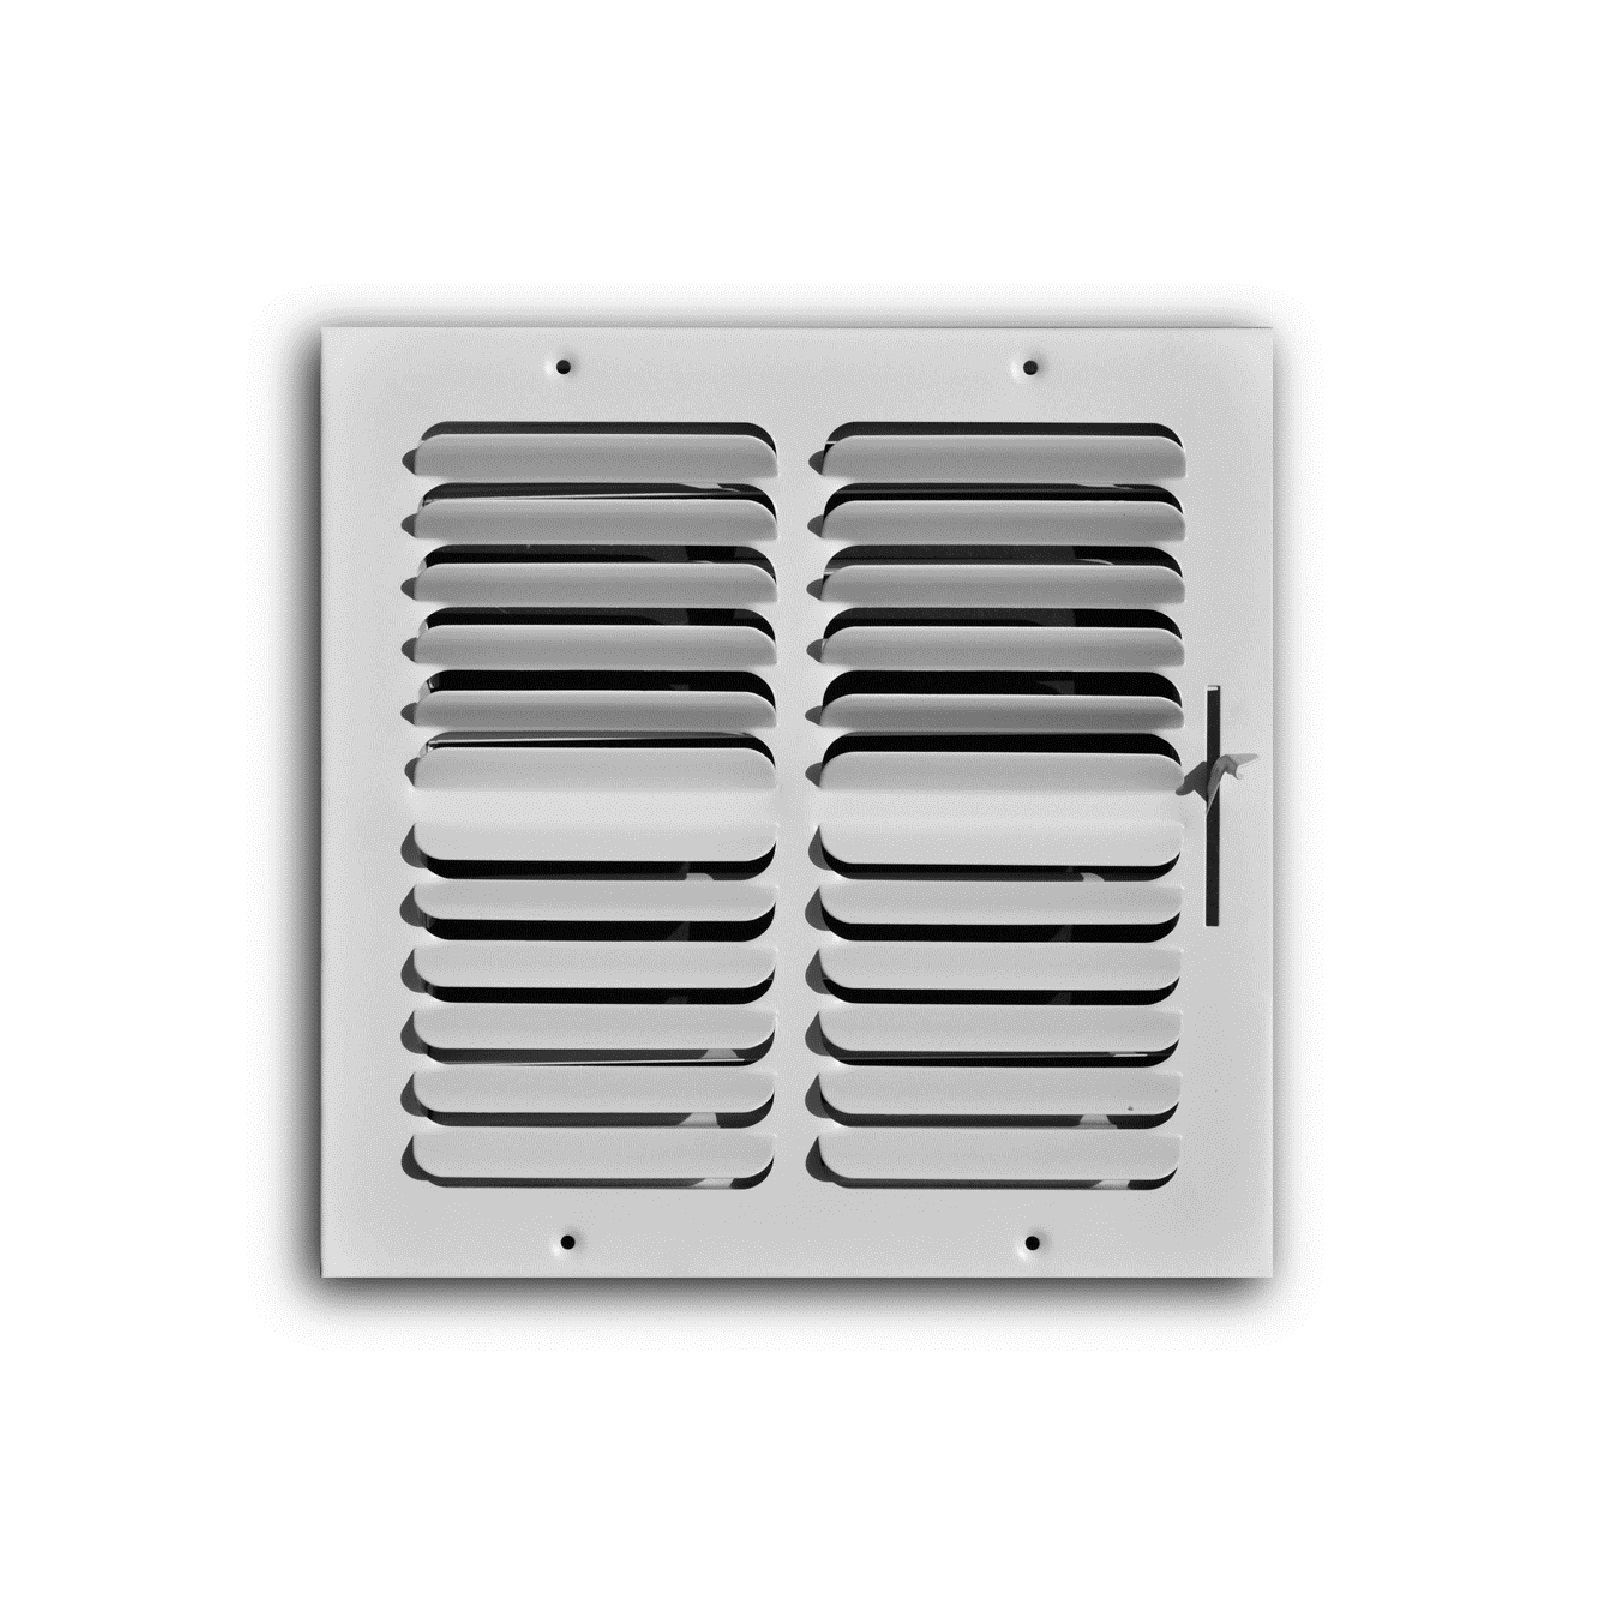 "TRUaire 402M 10X08 - Fixed Curved Blade Wall/Ceiling Register With Multi Shutter Damper, 2-Way, White, 10"" X 08"""